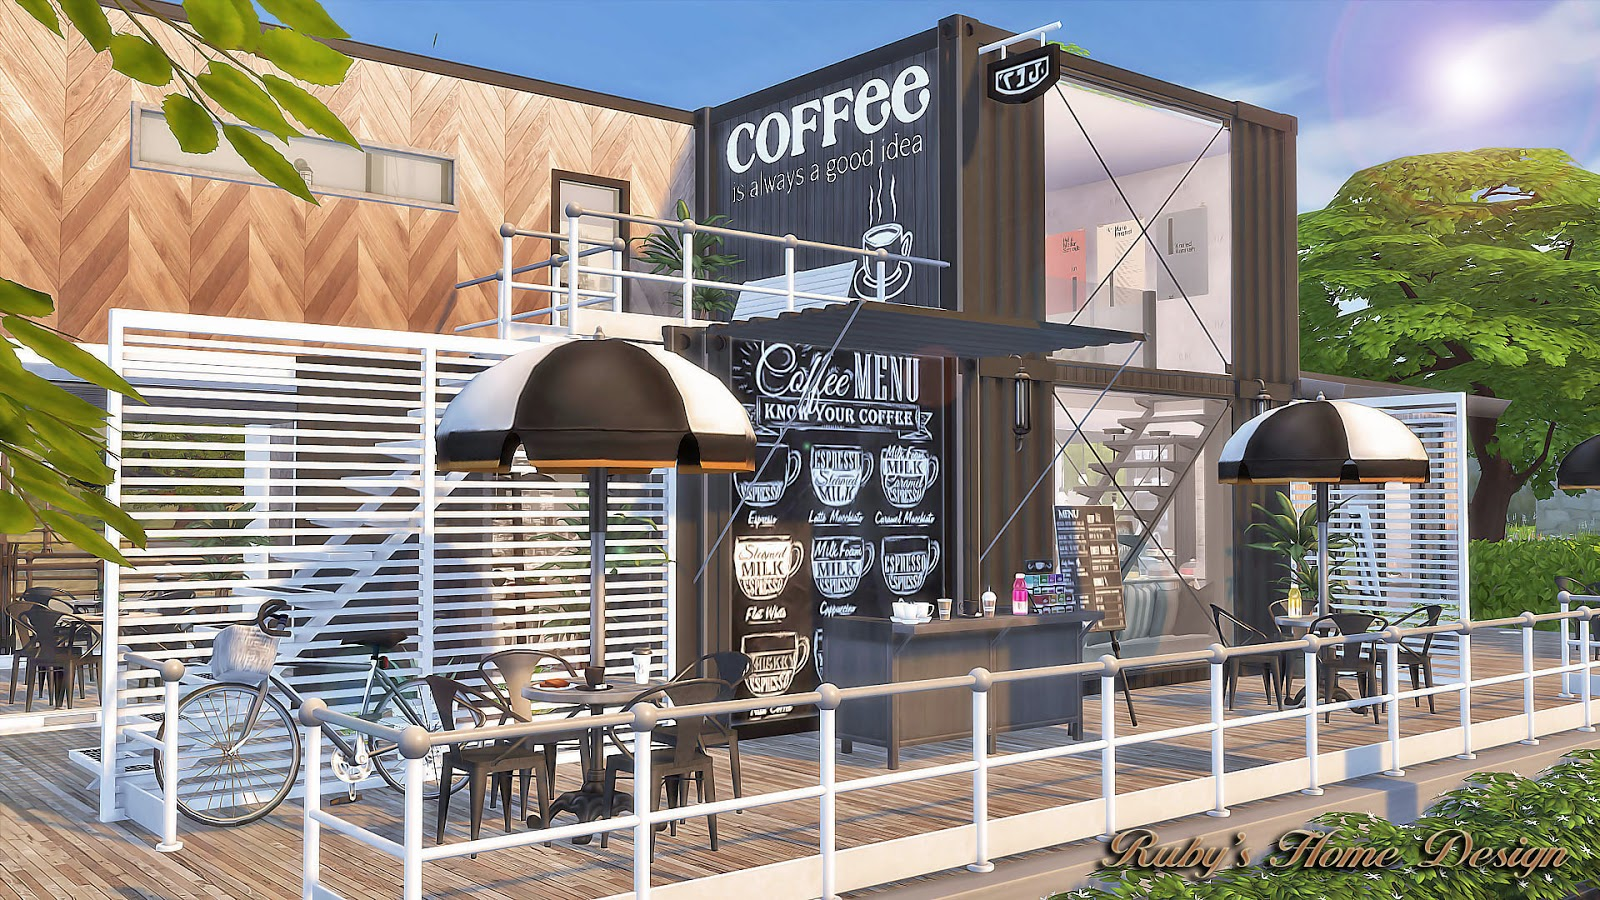 Sims4 container coffee shop no download link ruby 39 s for Sims 4 exterior design